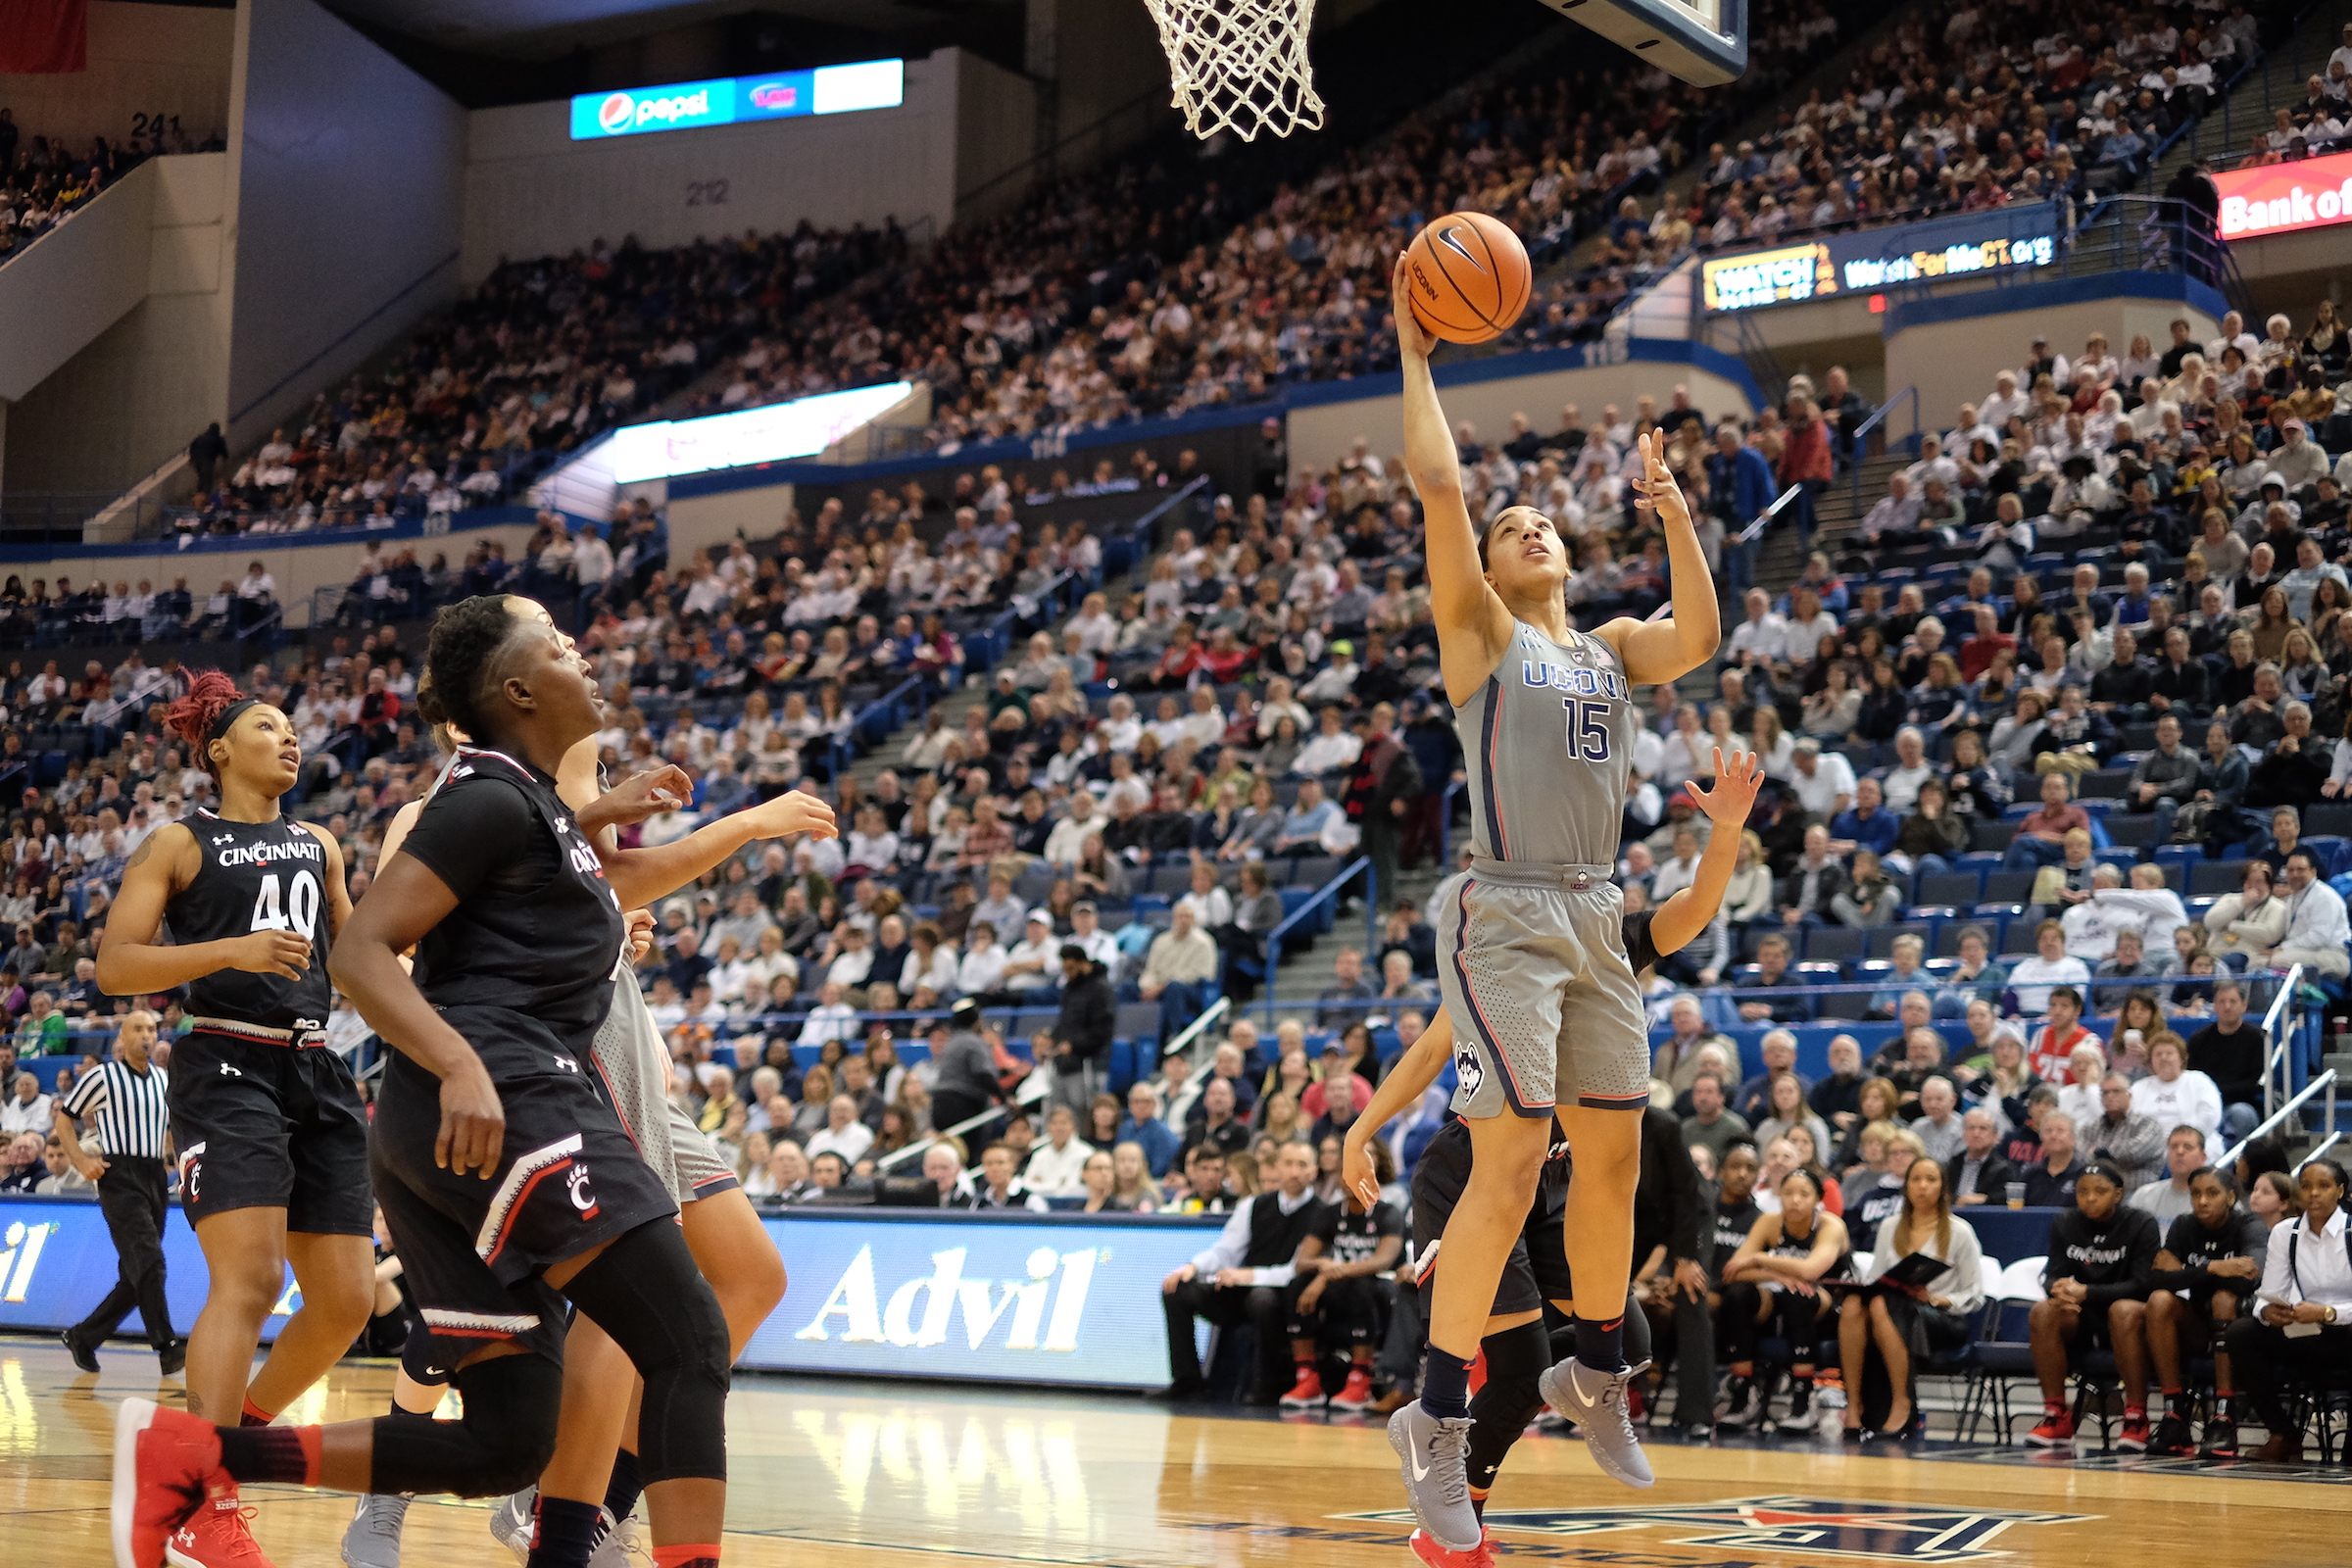 UConn squares up and takes on Cincinnati in basketball on Sunday, Feb. 4. The Huskies took a commanding lead in the tail end of the first half, leading to a 106-65 victory. (John Sammis/The Daily Campus)